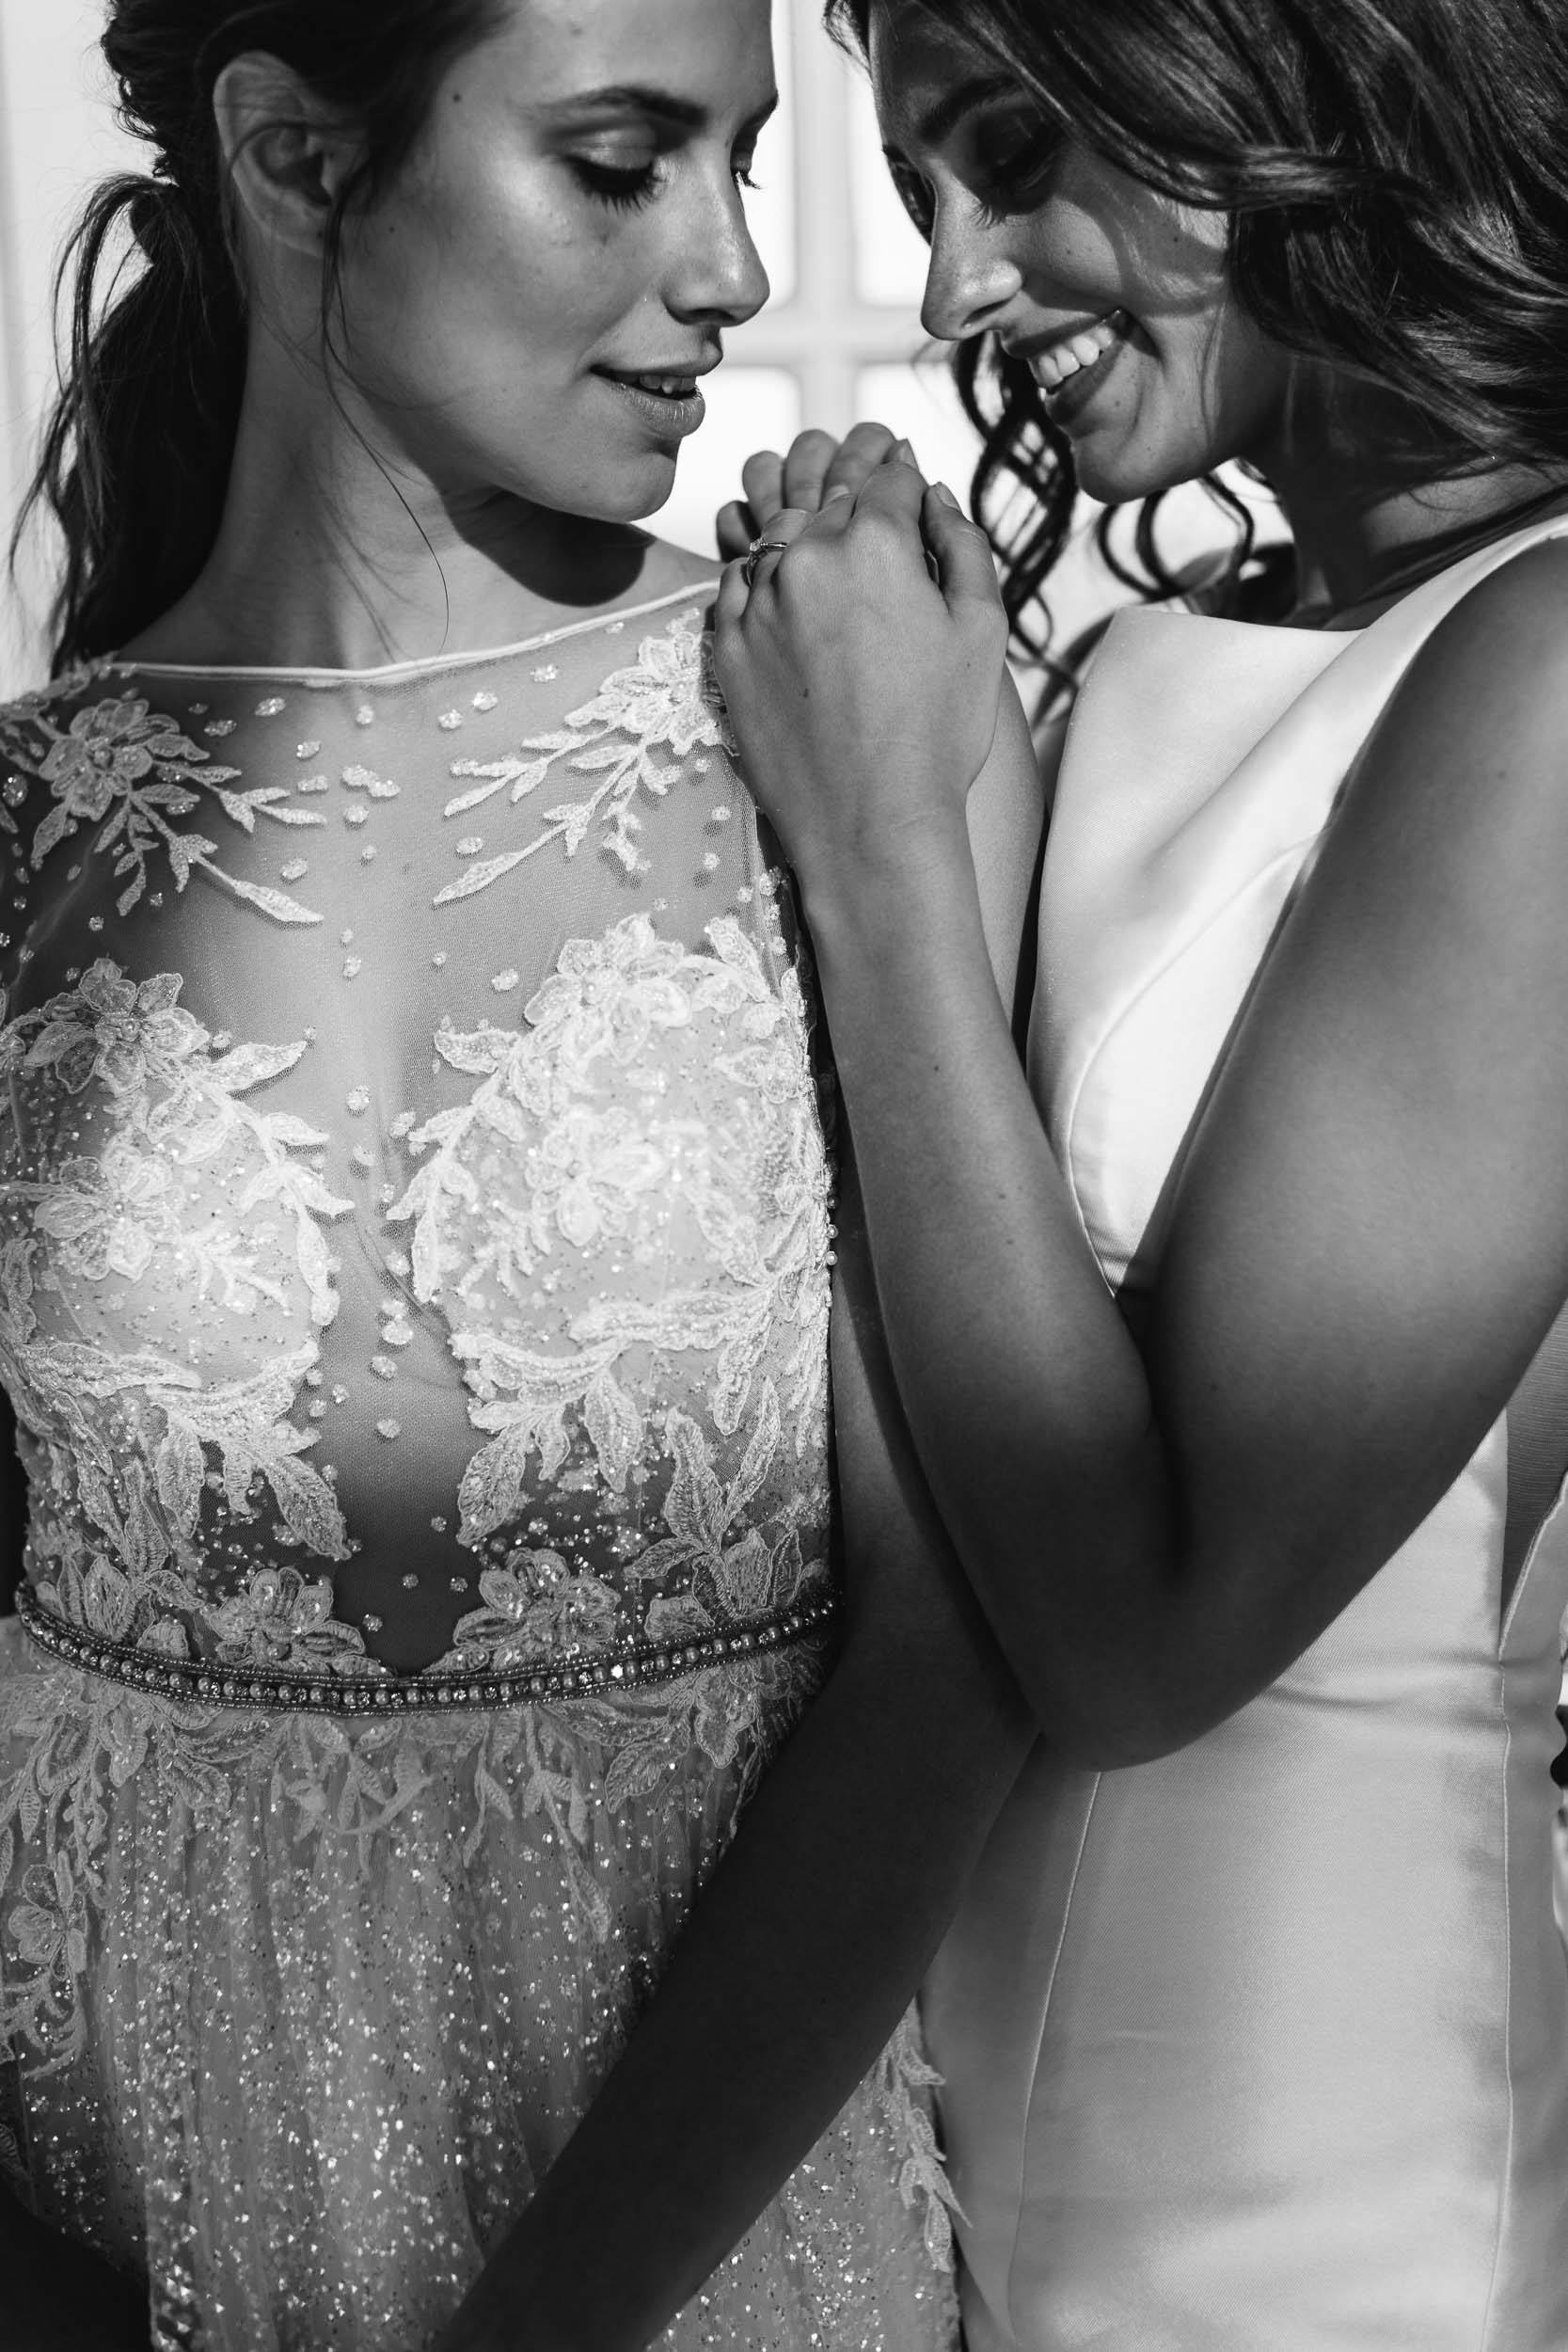 Black and White Photo of Same Sex Wedding | Wedding Photography by Kas Richards